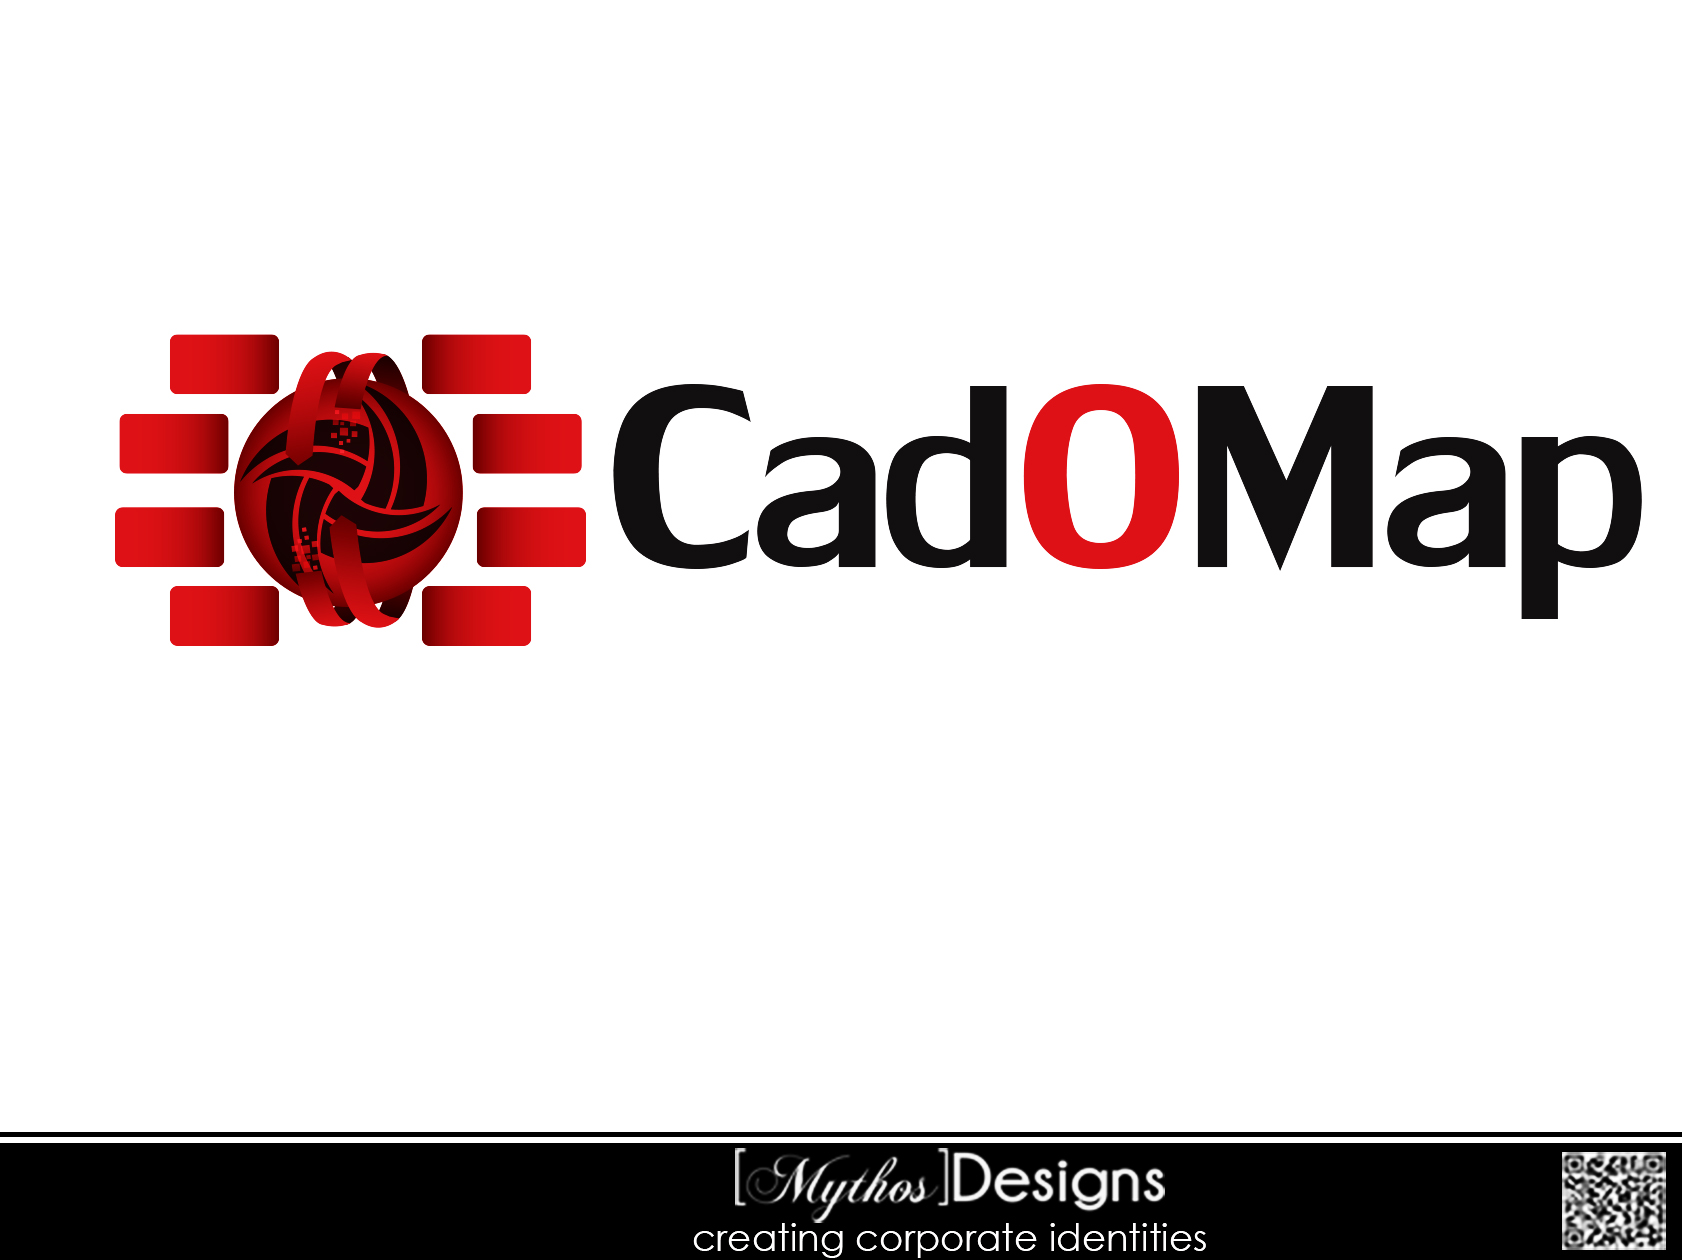 Logo Design by Mythos Designs - Entry No. 44 in the Logo Design Contest Captivating Logo Design for CadOMap software product.